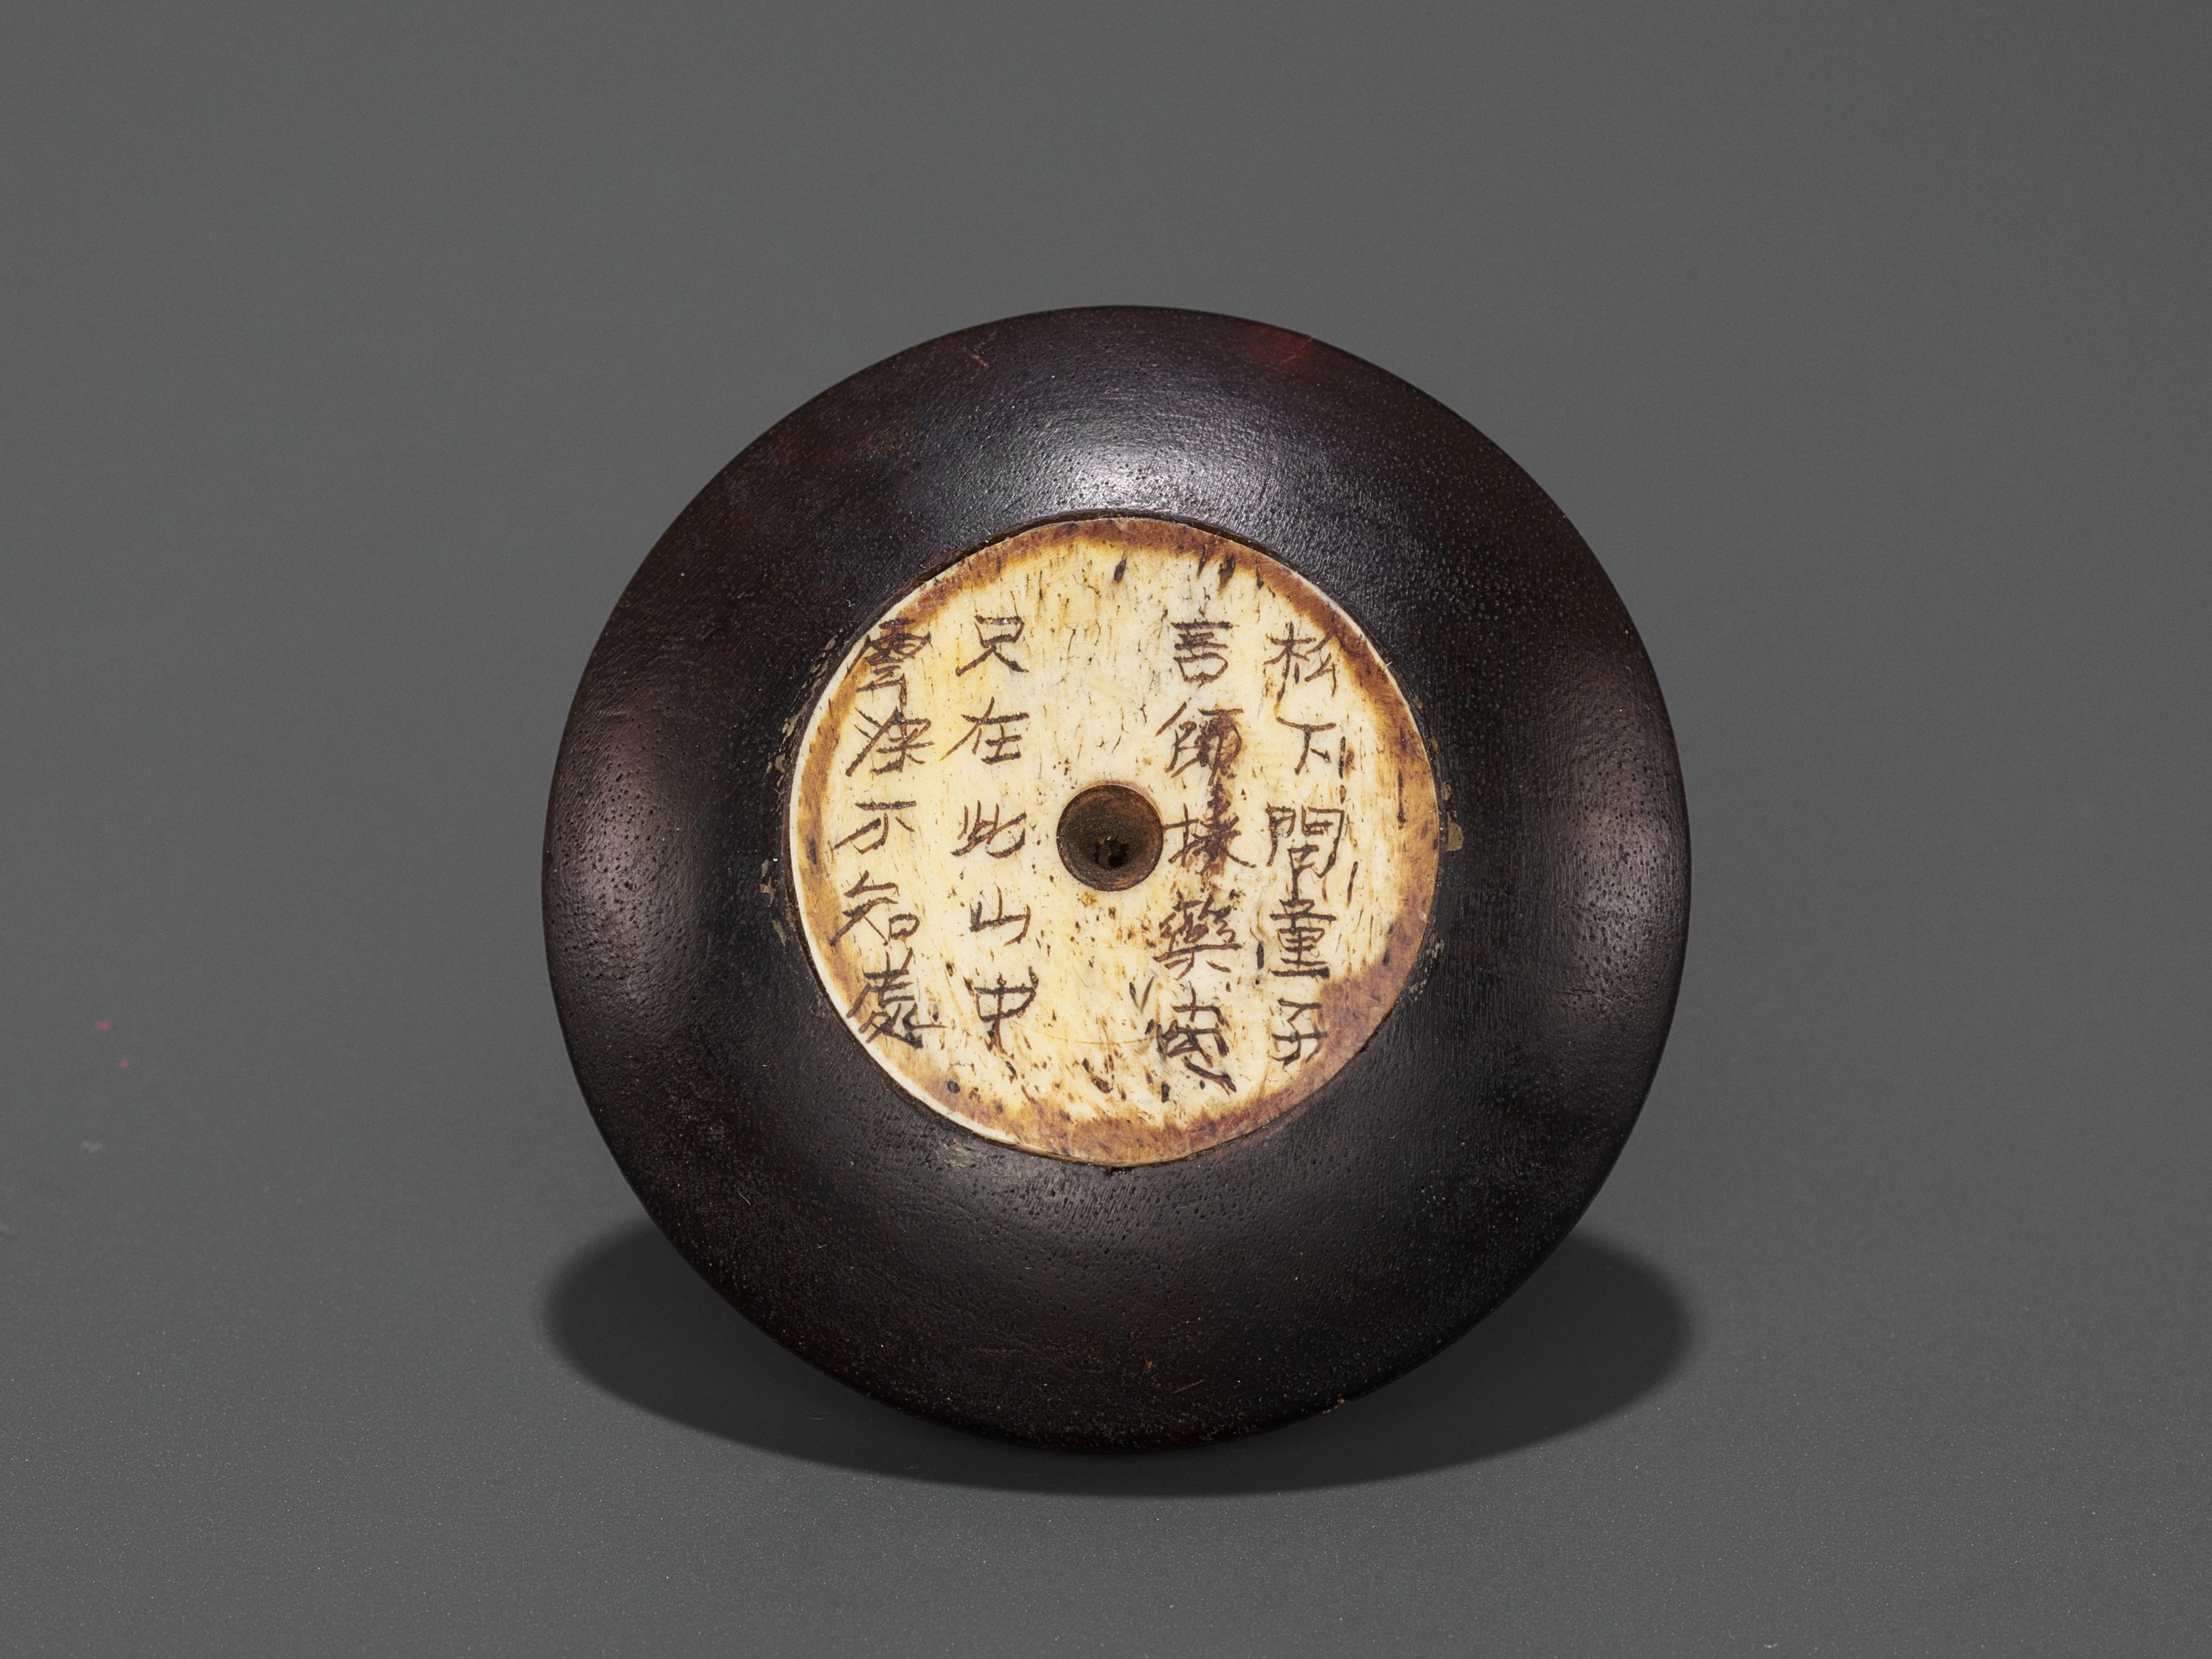 A HARDWOOD OPIUM PIPE WITH JADEITE, IVORY AND ZITAN FITTINGS, LATE QING TO REPUBLIC - Image 3 of 6